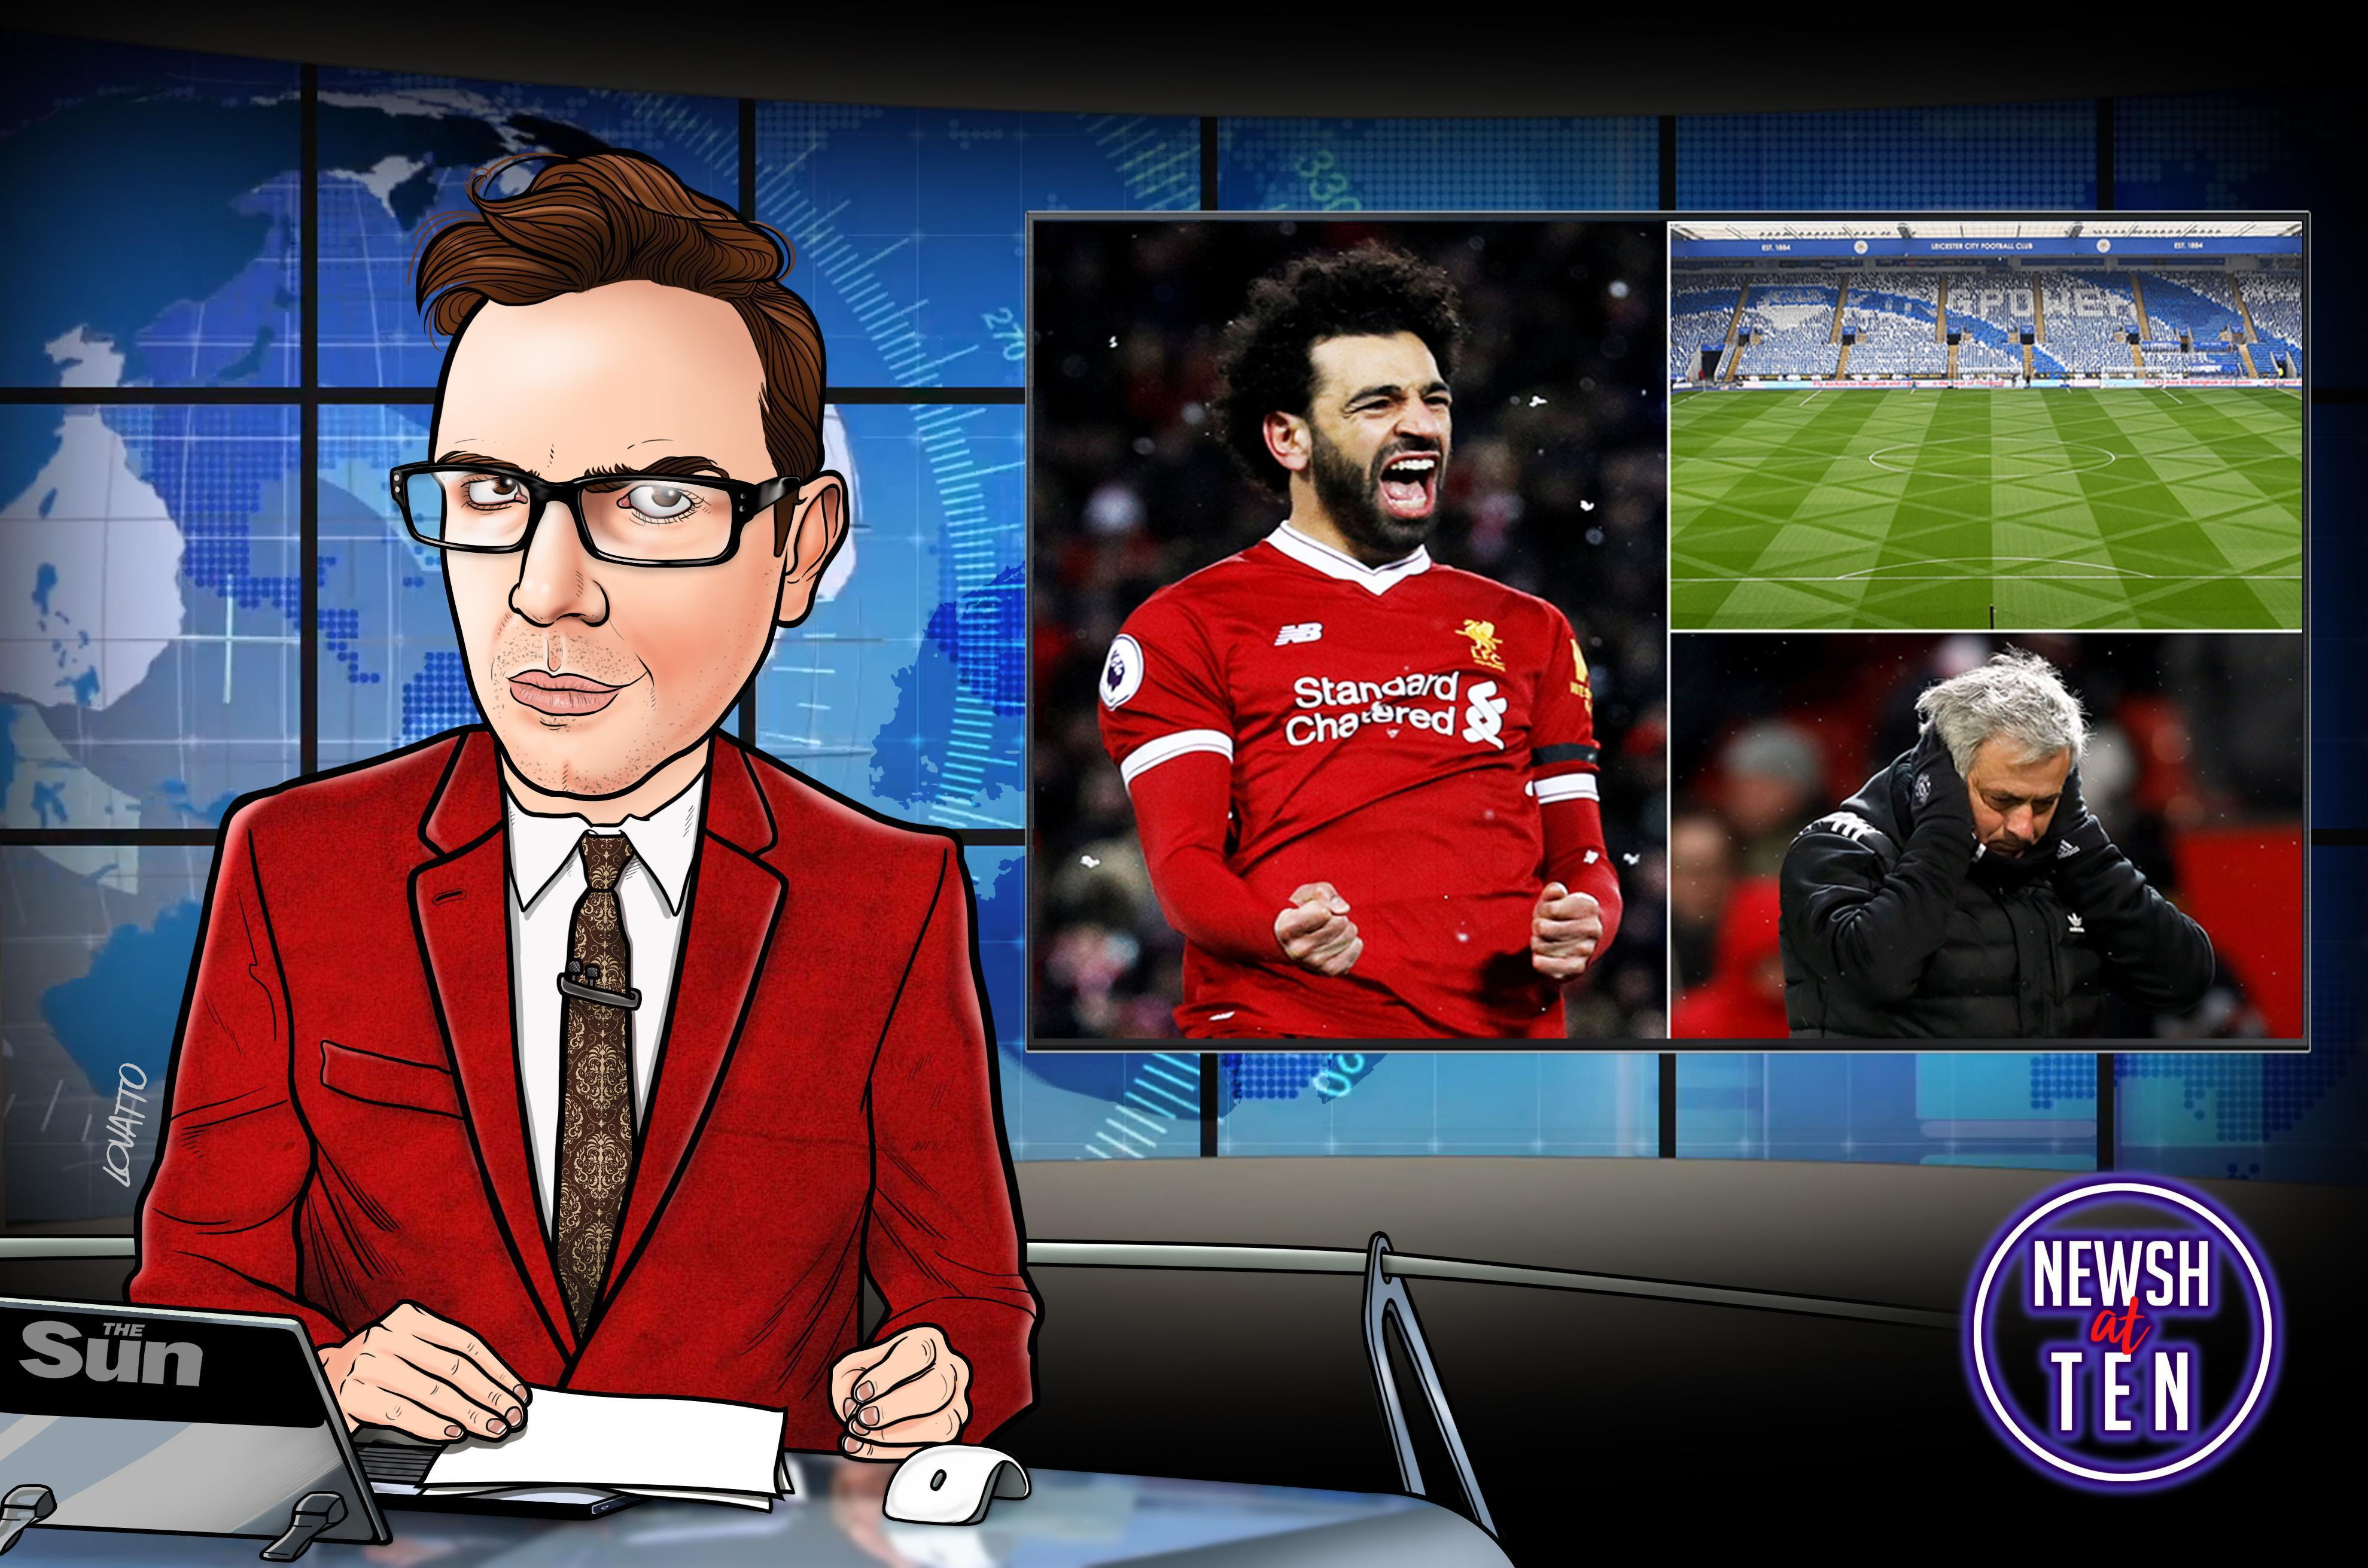 Manchester United library, Mo Salah the miracle man and life's a pitch at Leicester: Premier League weekend exposed